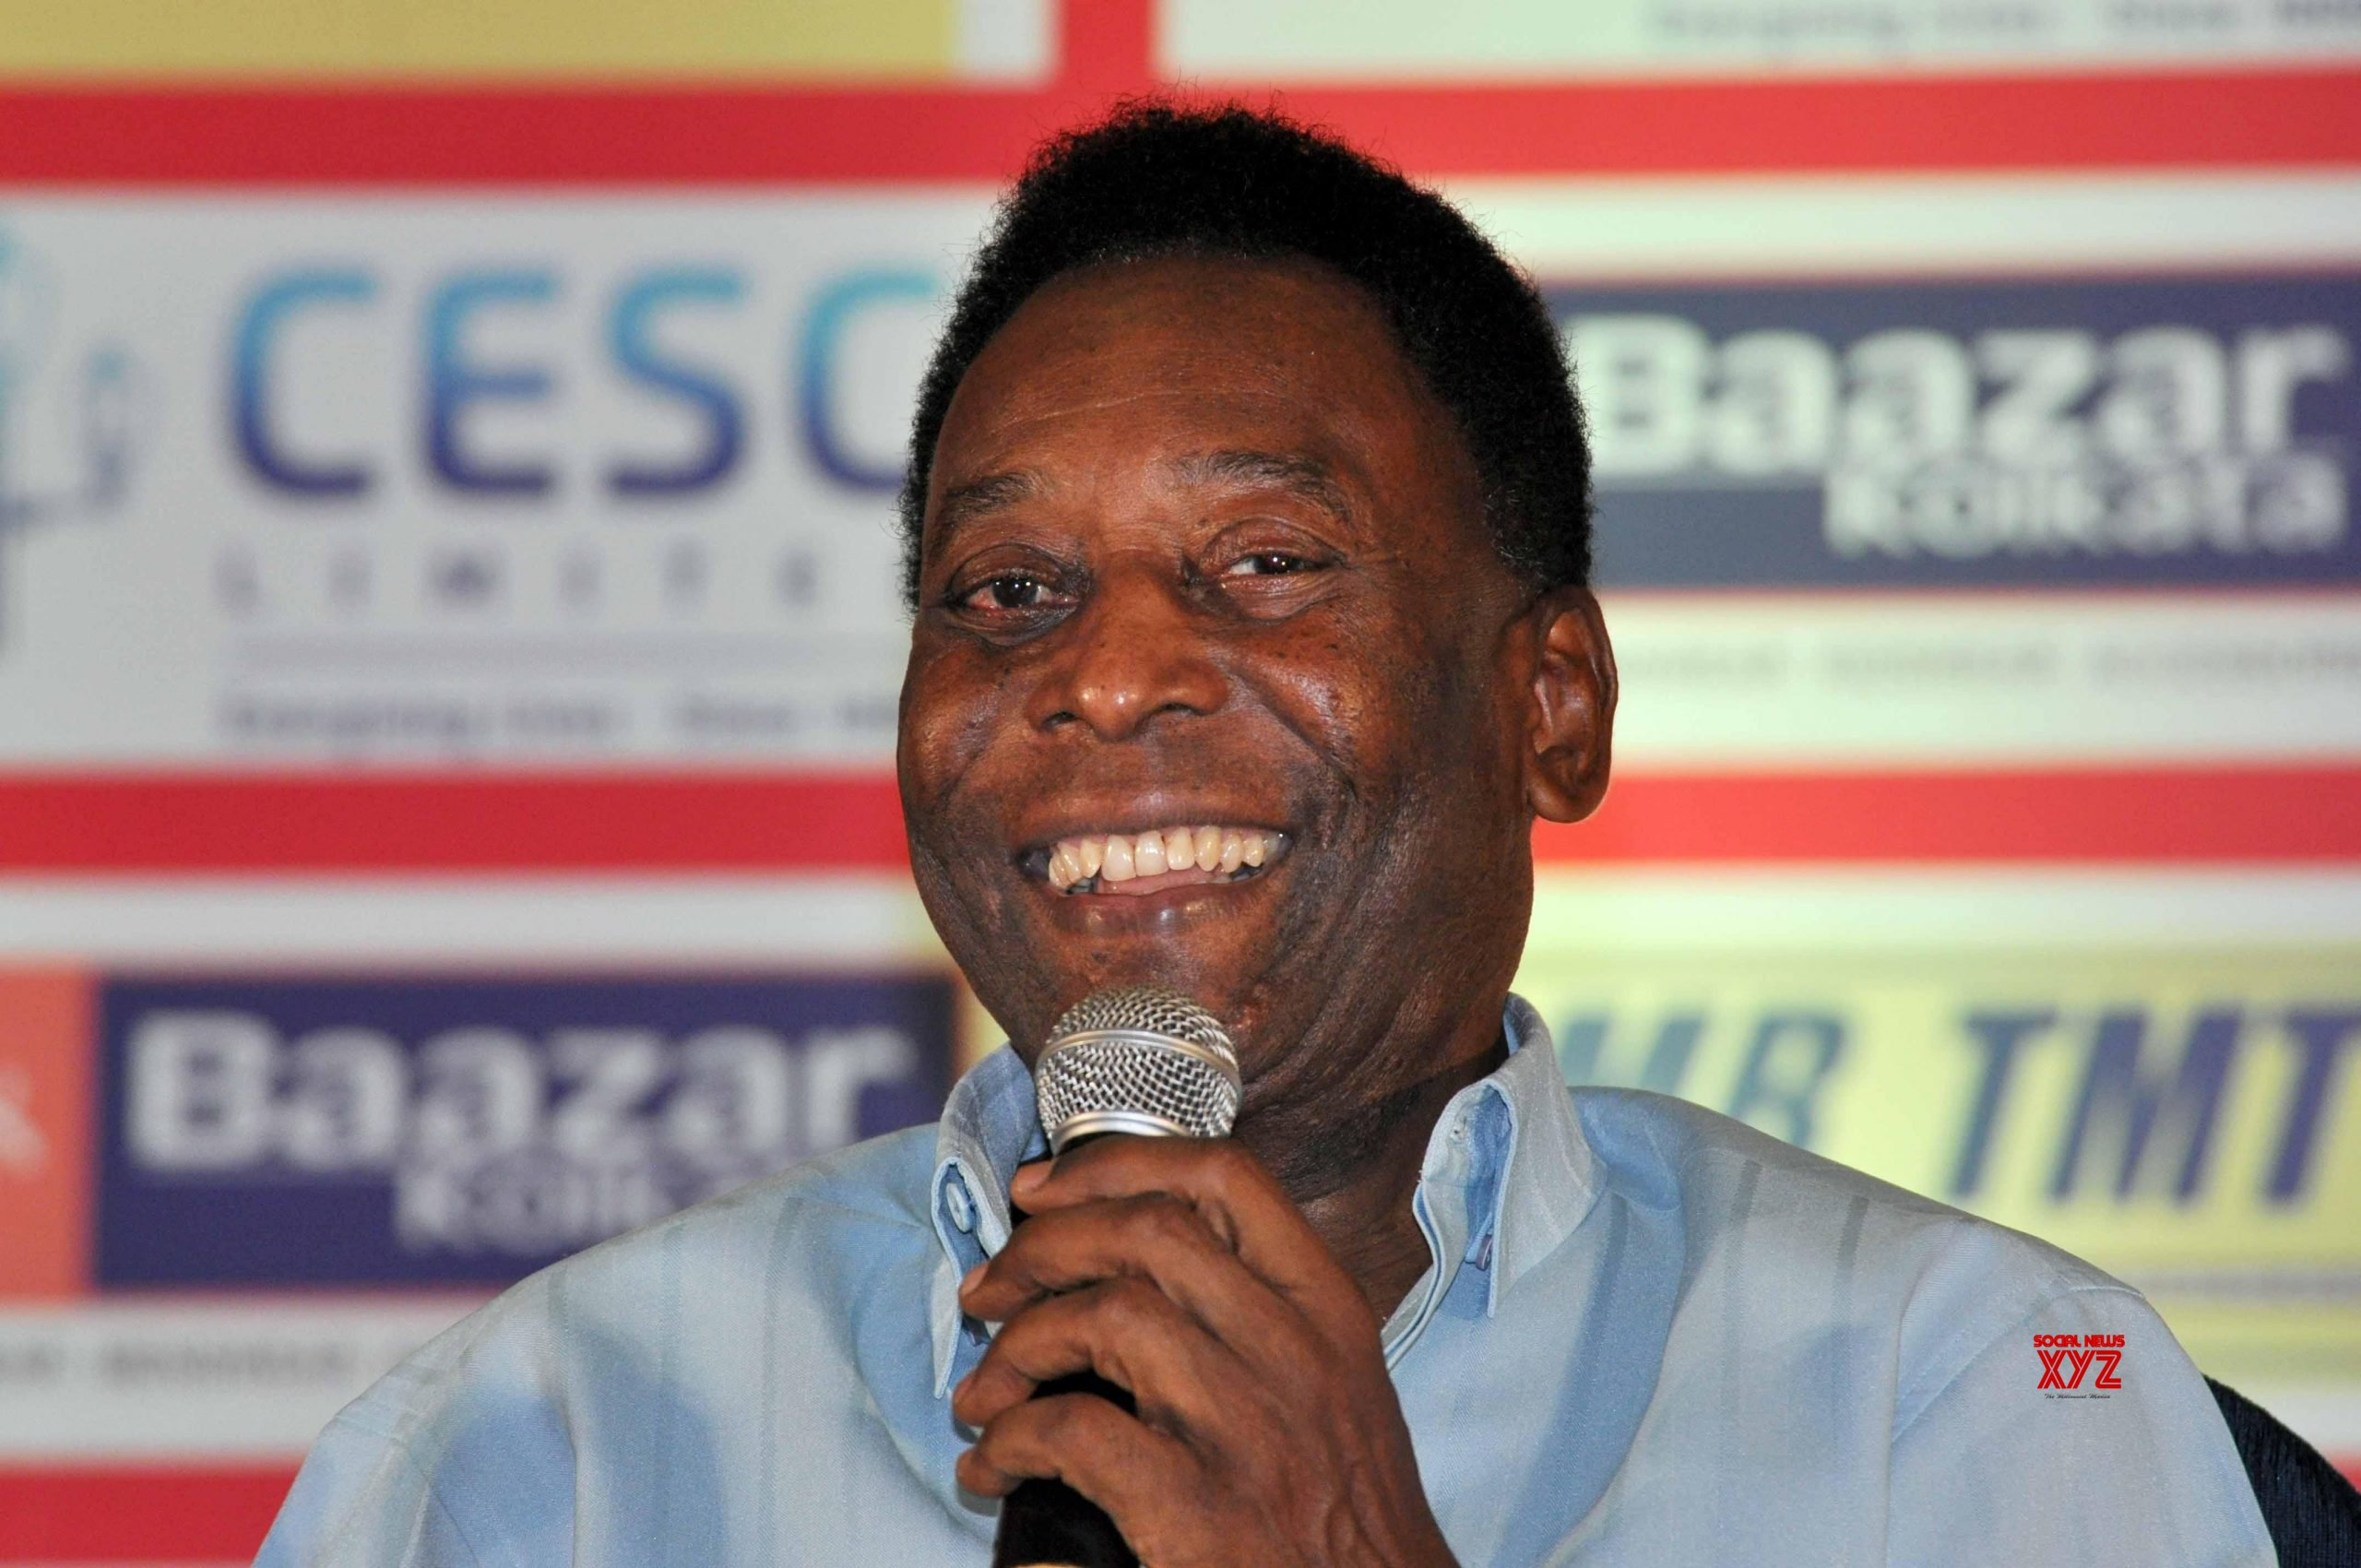 Health issues normal for people of my age: Pele